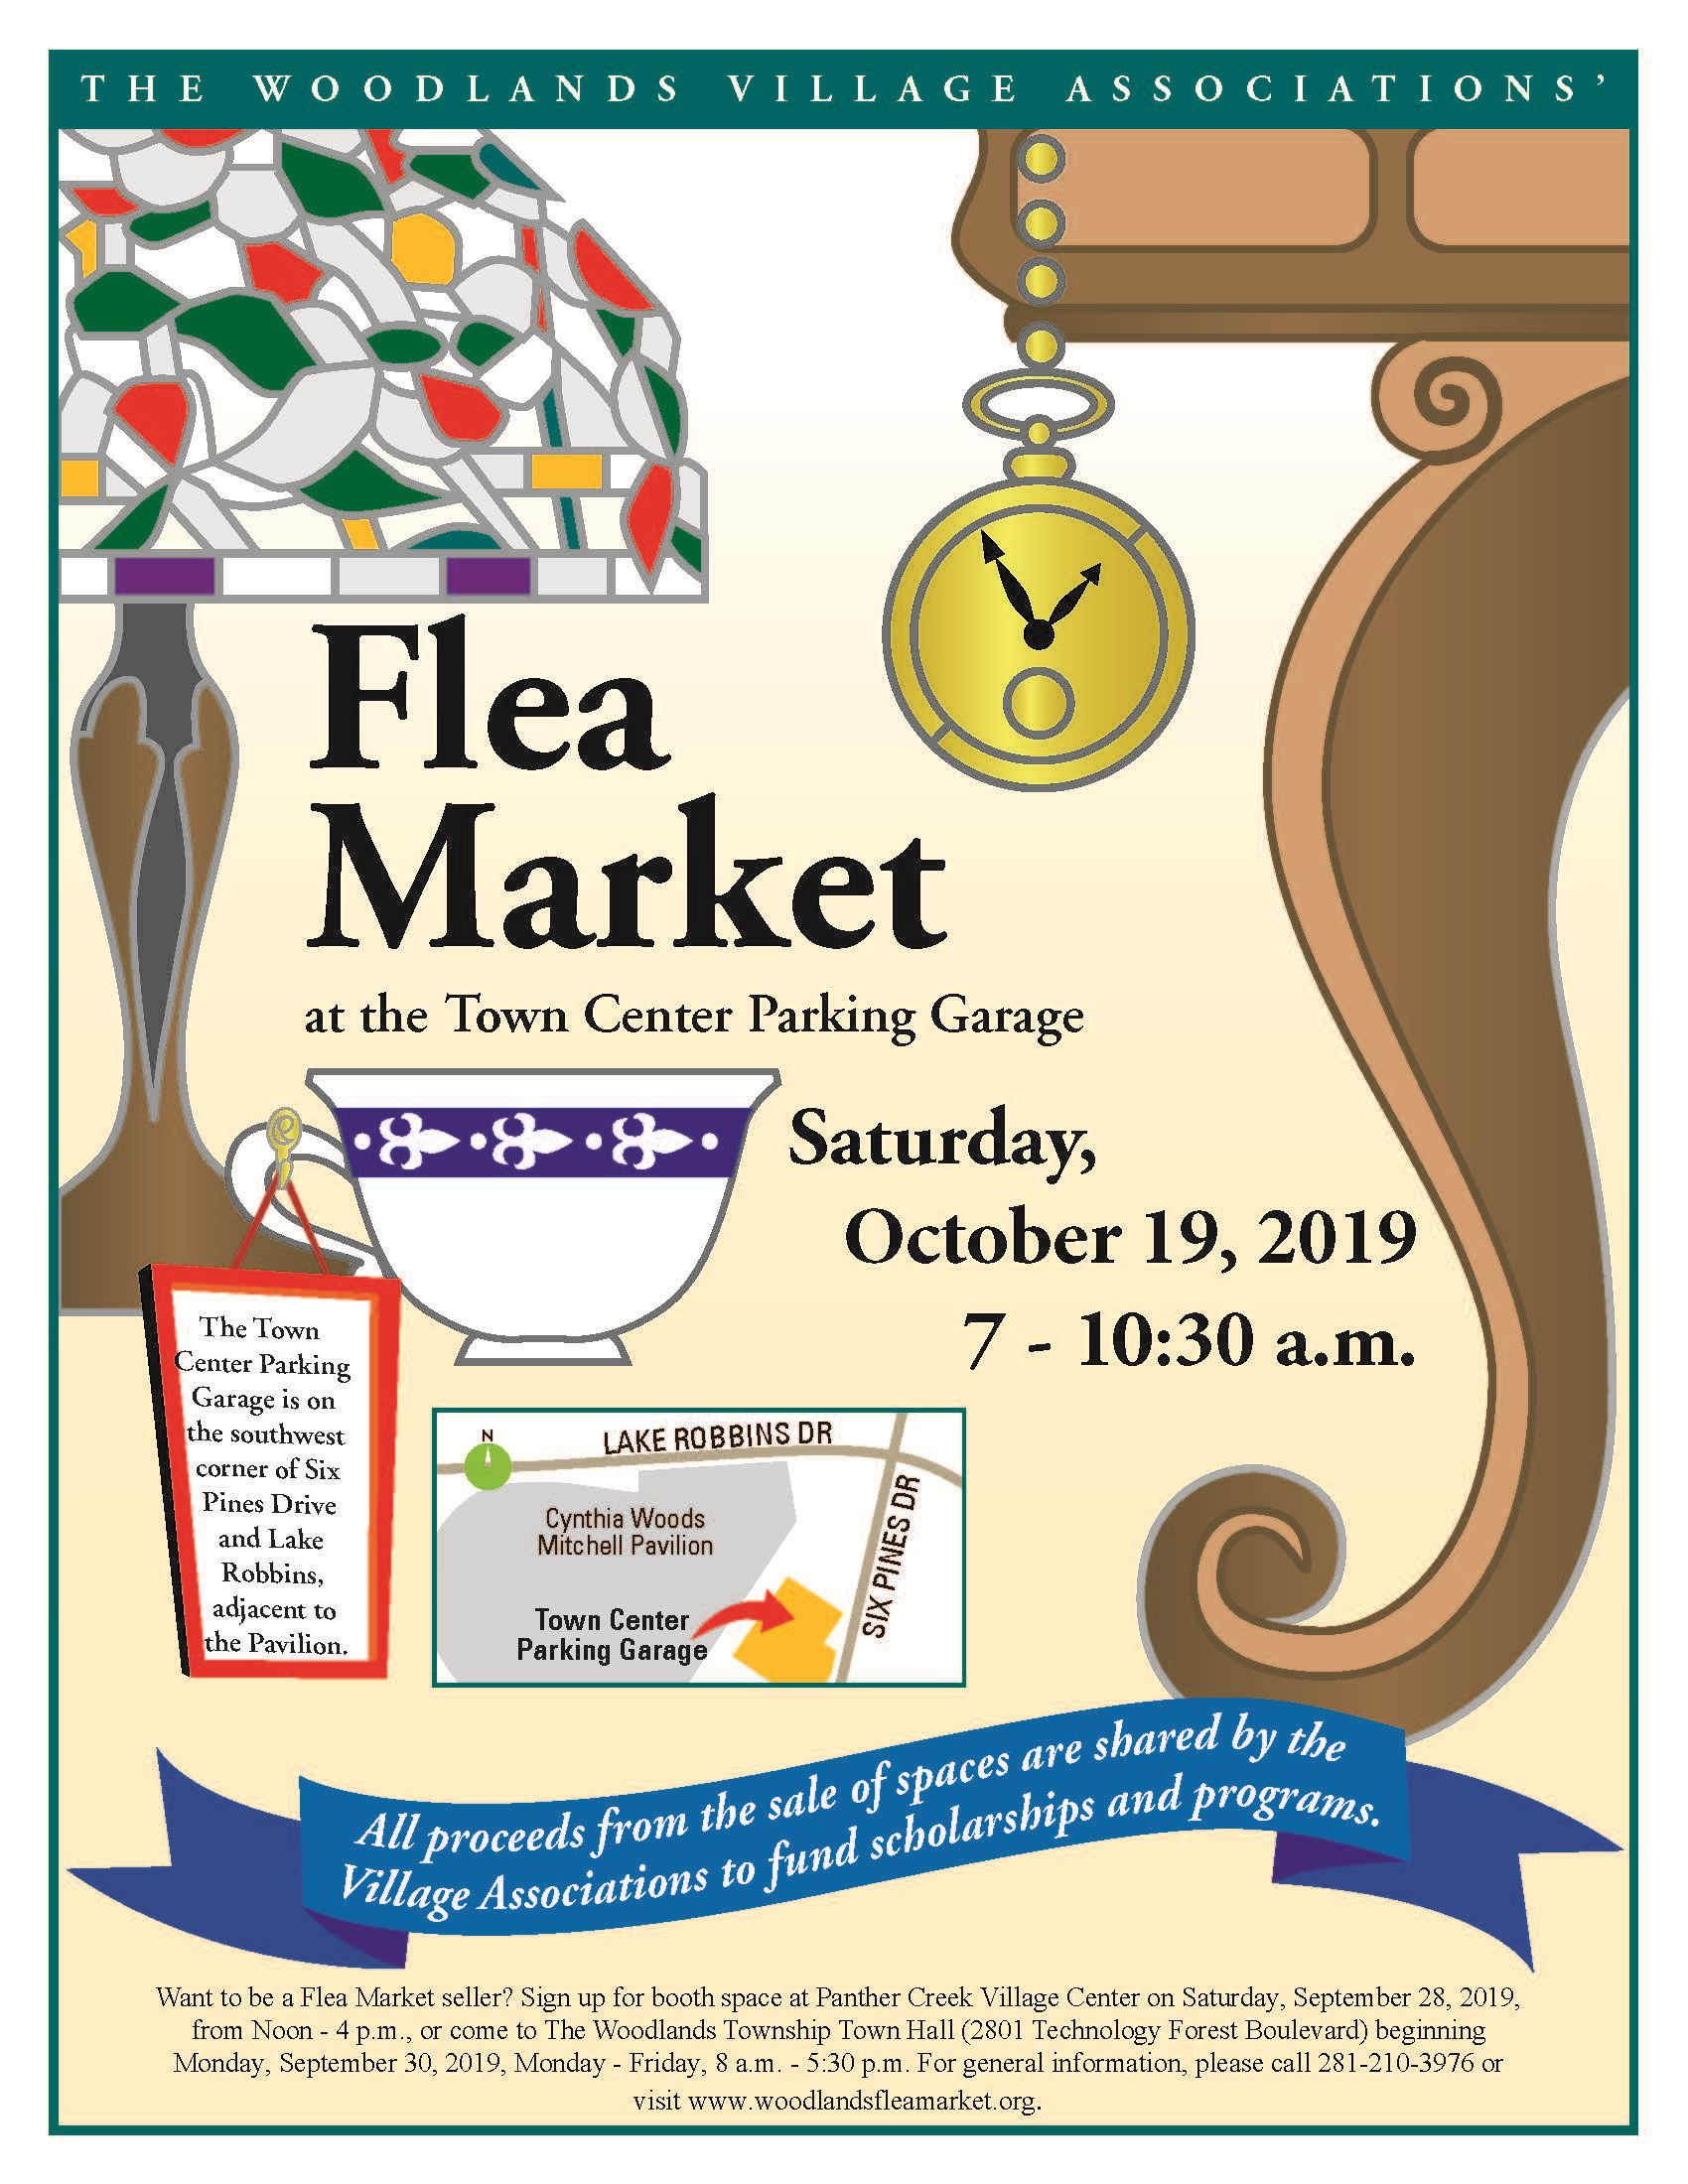 Fall 2019 Flea Market Flier